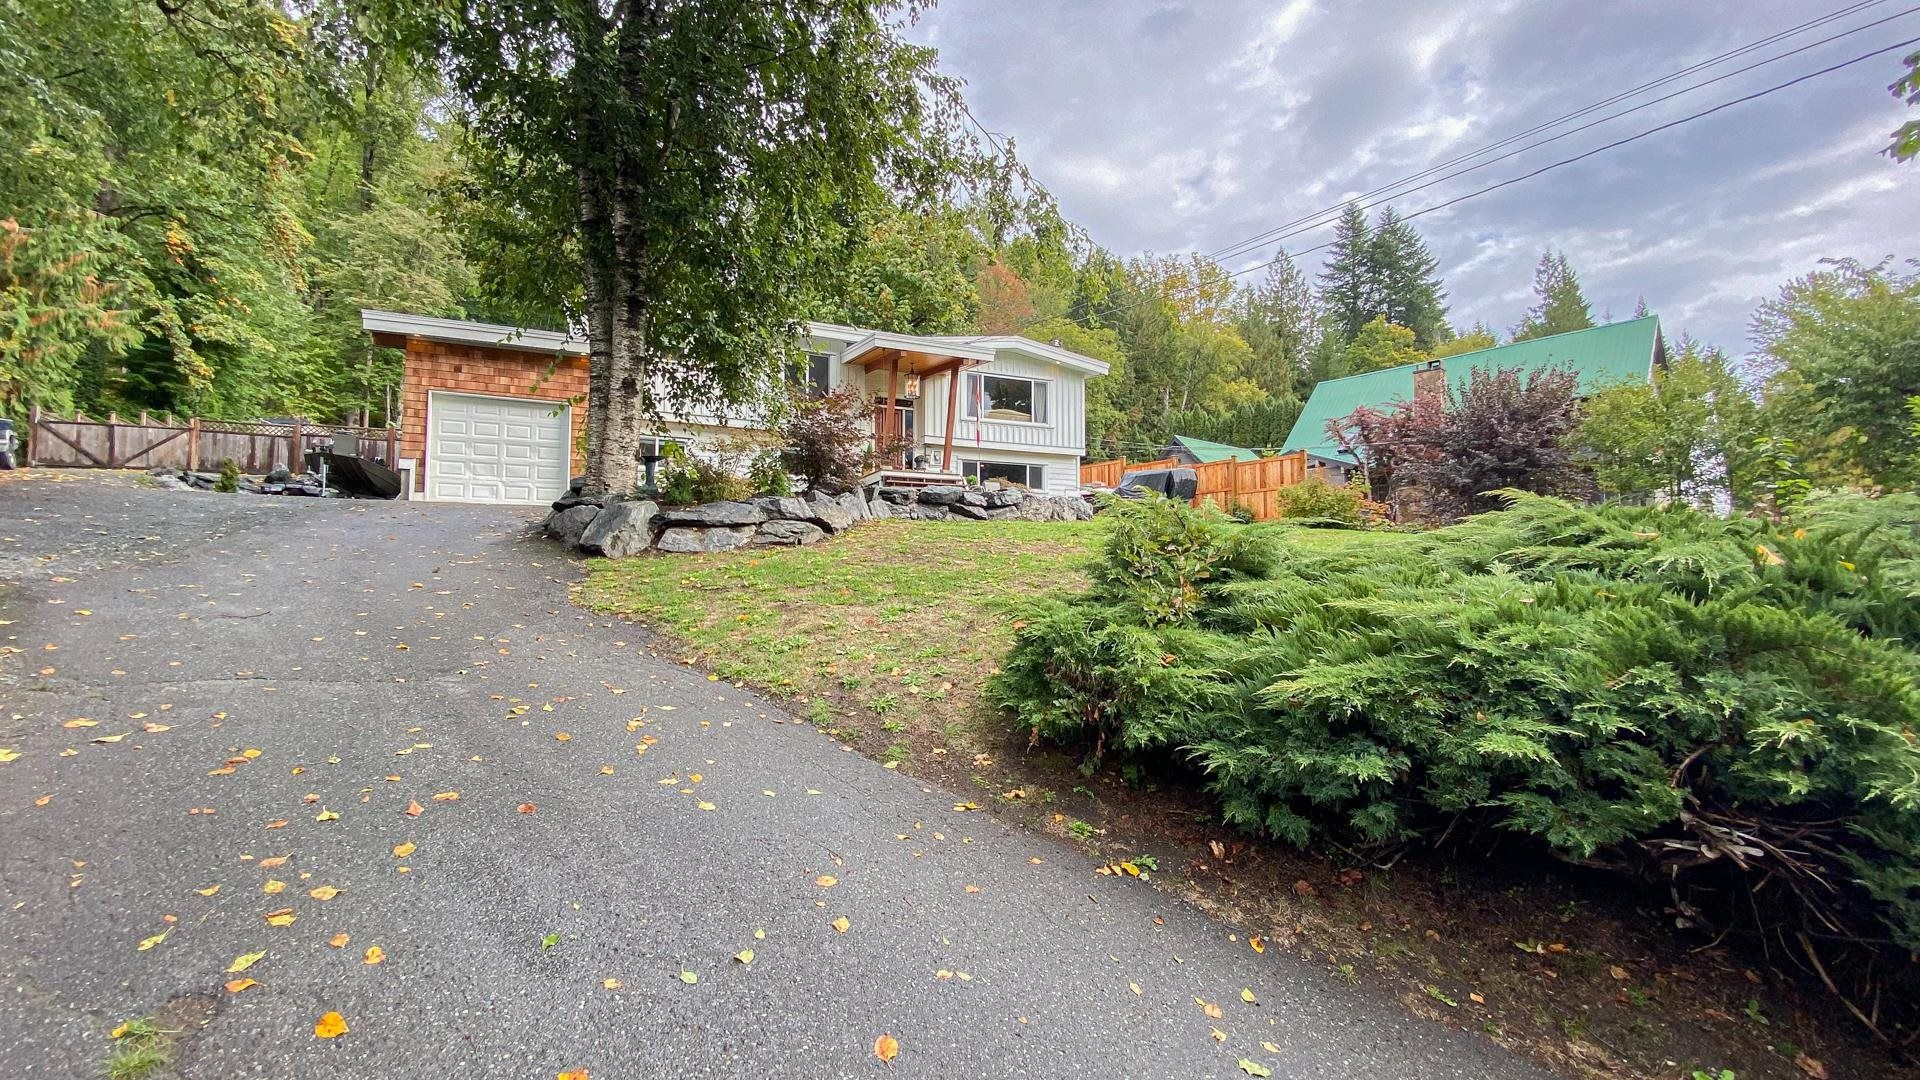 Main Photo: 47913 HANSOM Road in Chilliwack: Chilliwack River Valley House for sale (Sardis)  : MLS®# R2622672